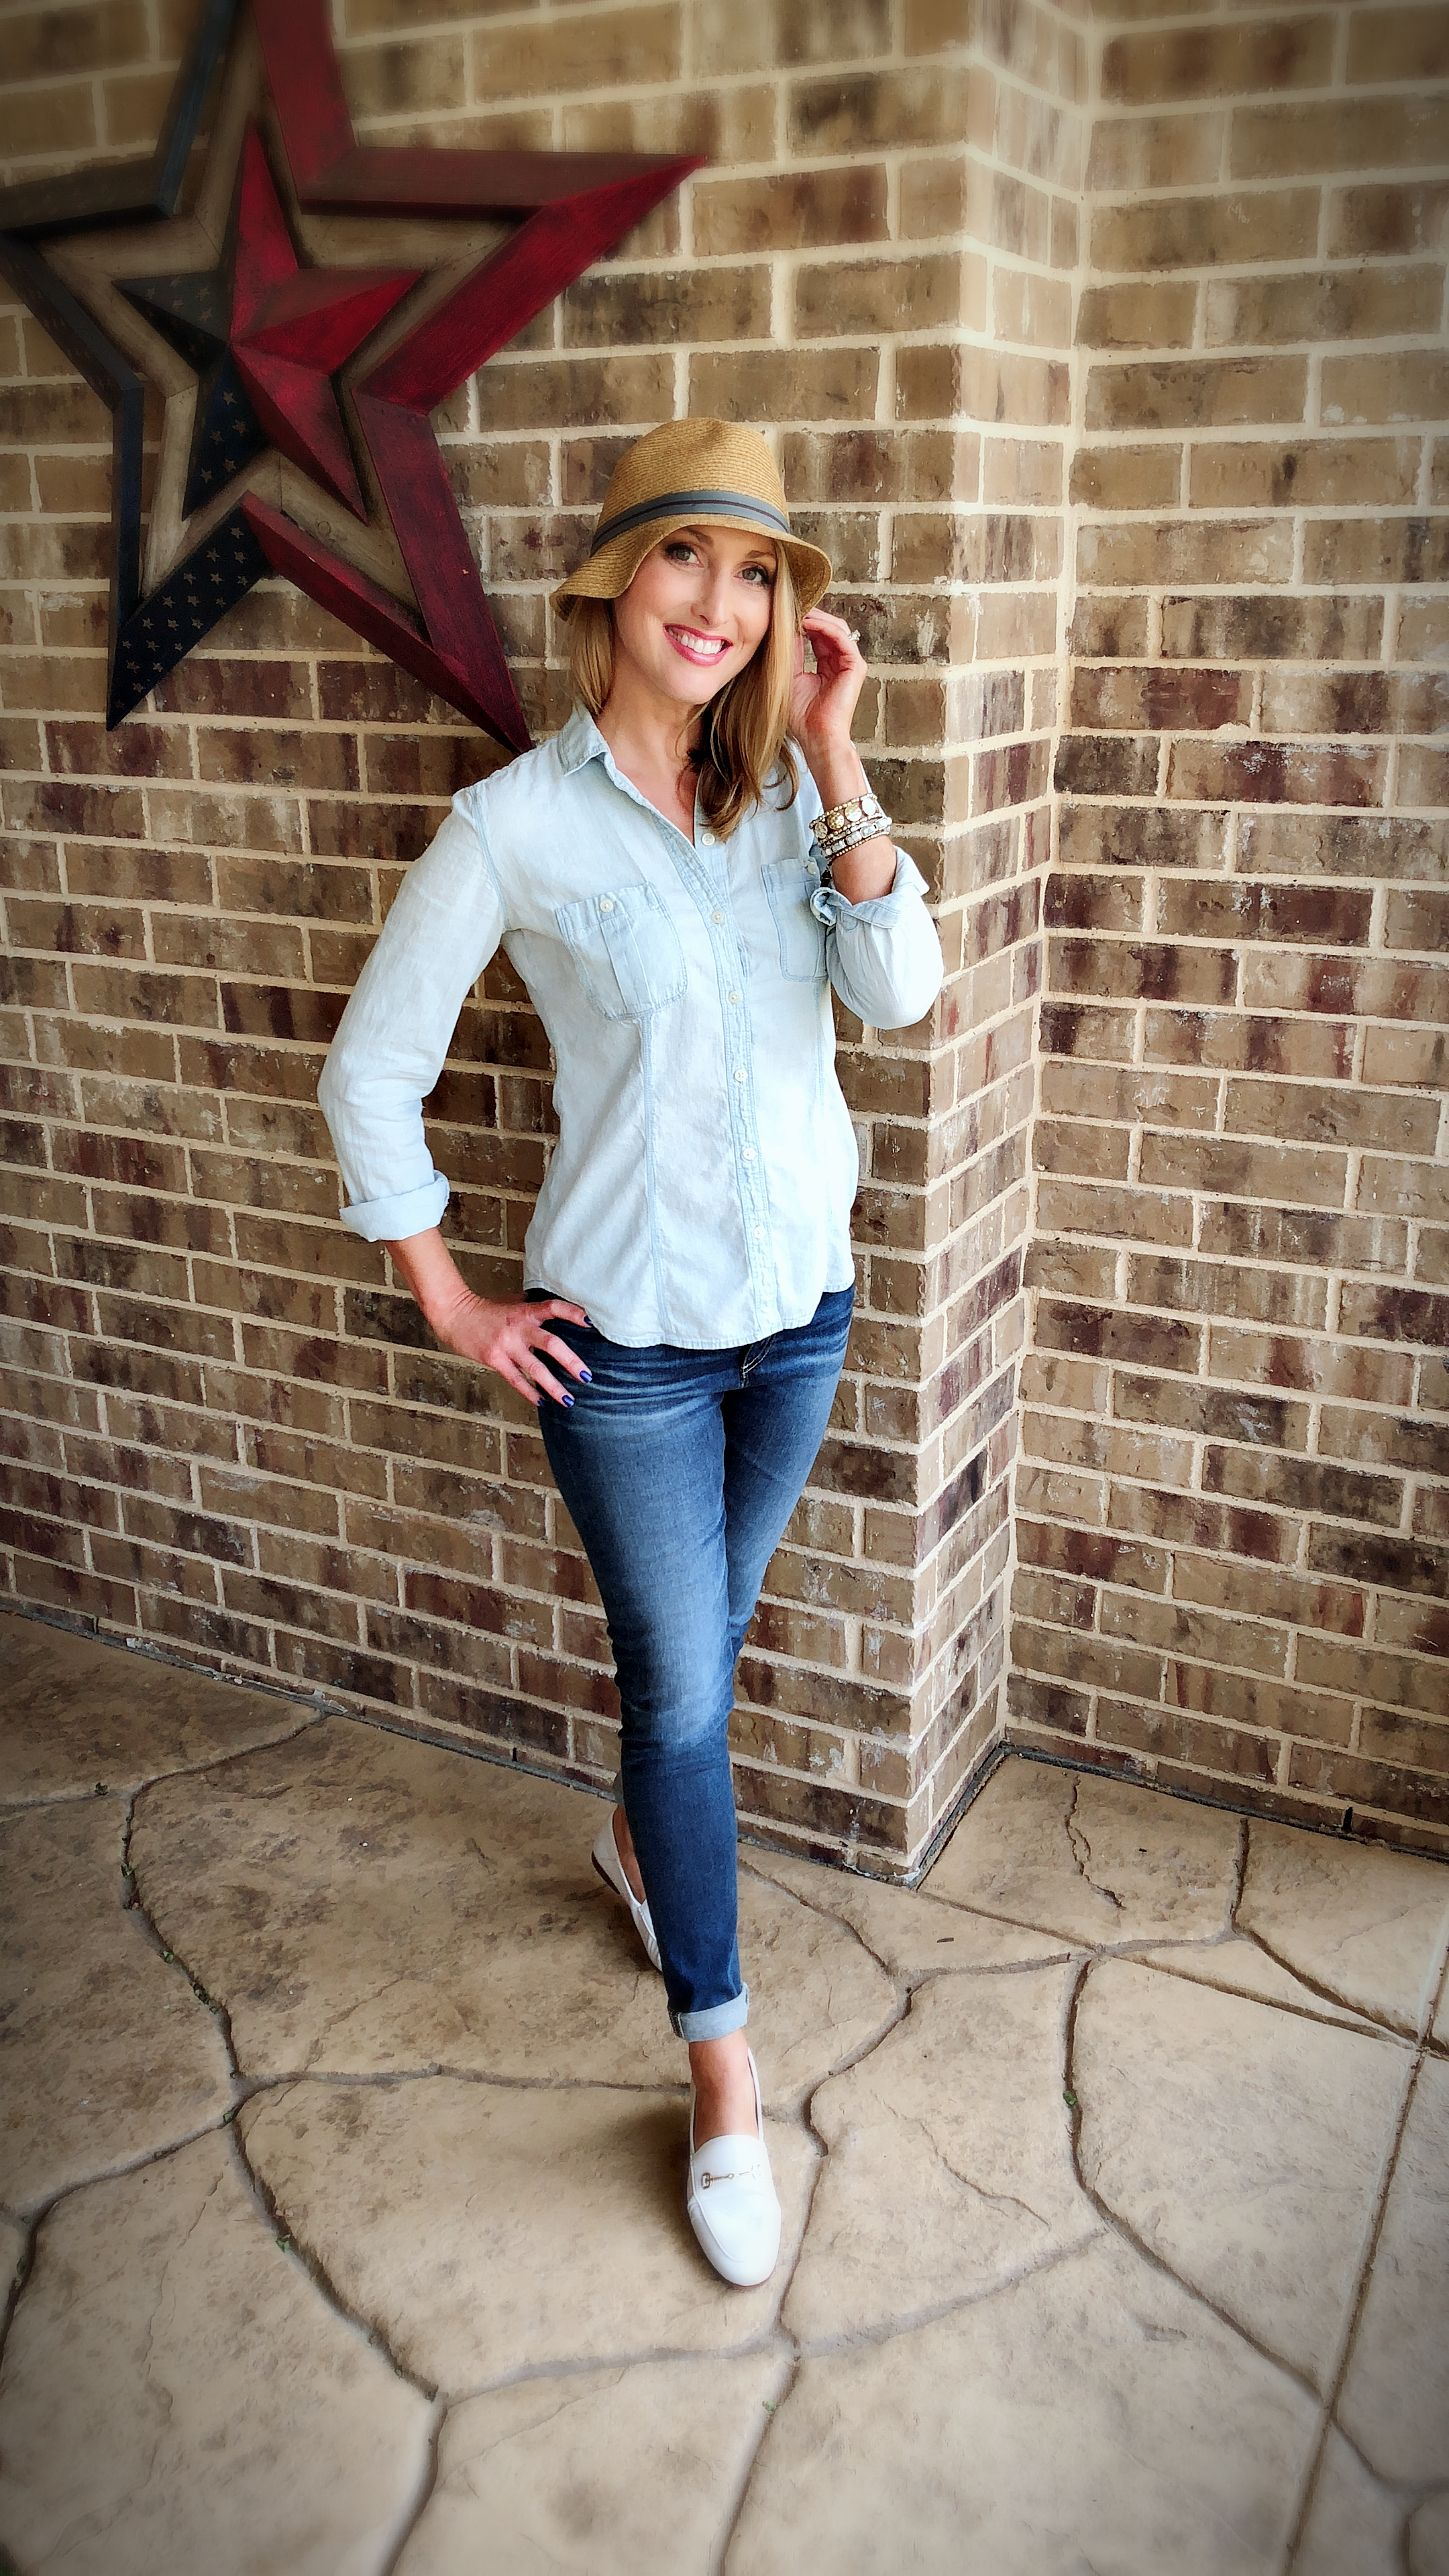 """c35a99fd5ba2 Jeans  AG """"Farrah Ankle Skinny"""" Bracelets  Berry Jewelry (old). Casual  outfit. White loafer outfit. Chambray shirt outfit. Loafers  Sam Edelman """" Loraine"""" ..."""